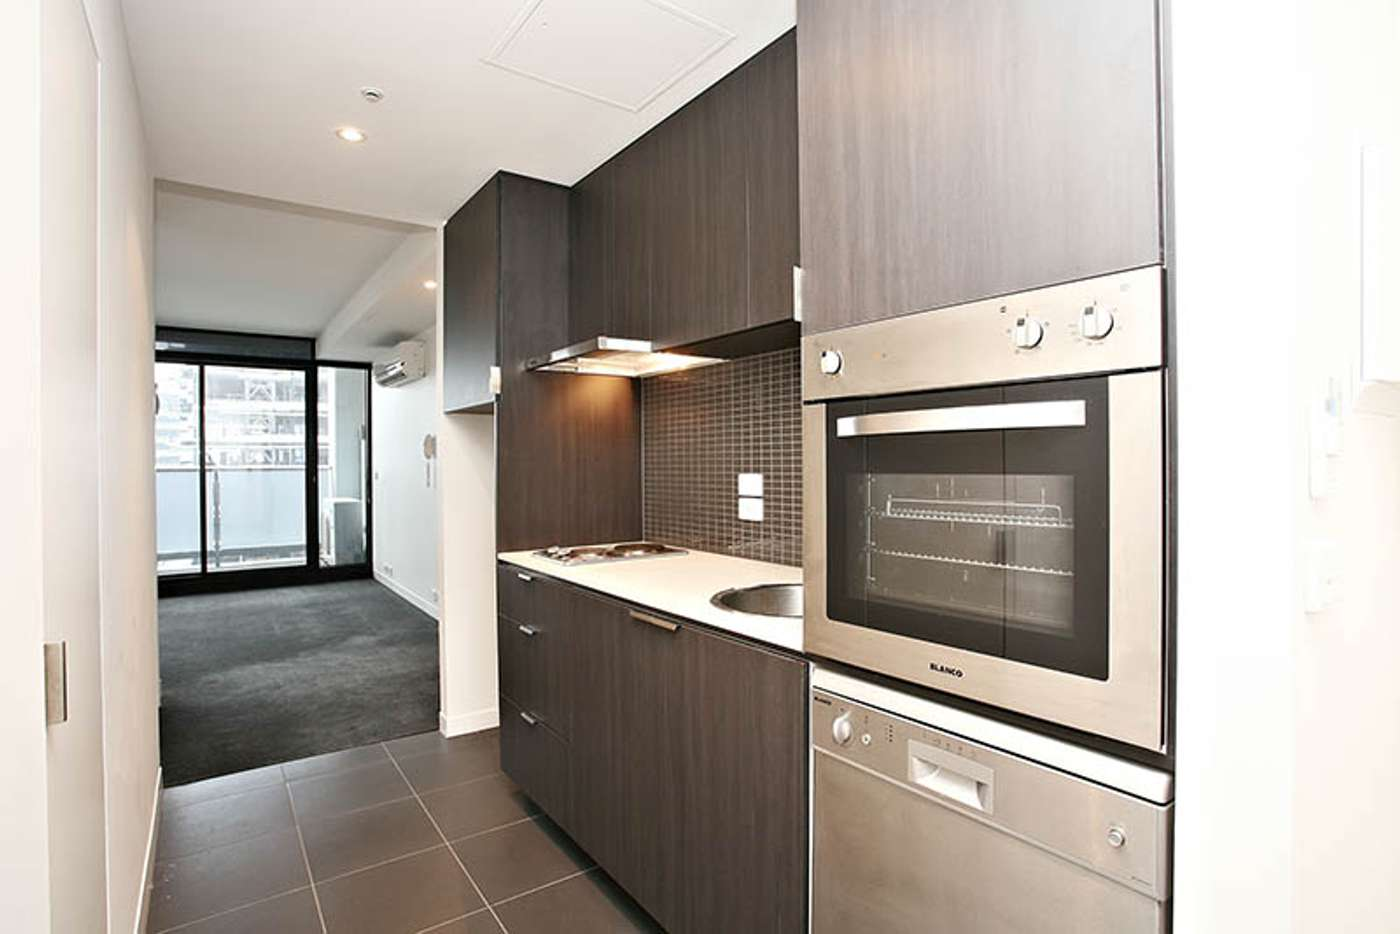 Main view of Homely apartment listing, 1011/7 Yarra Street, South Yarra VIC 3141